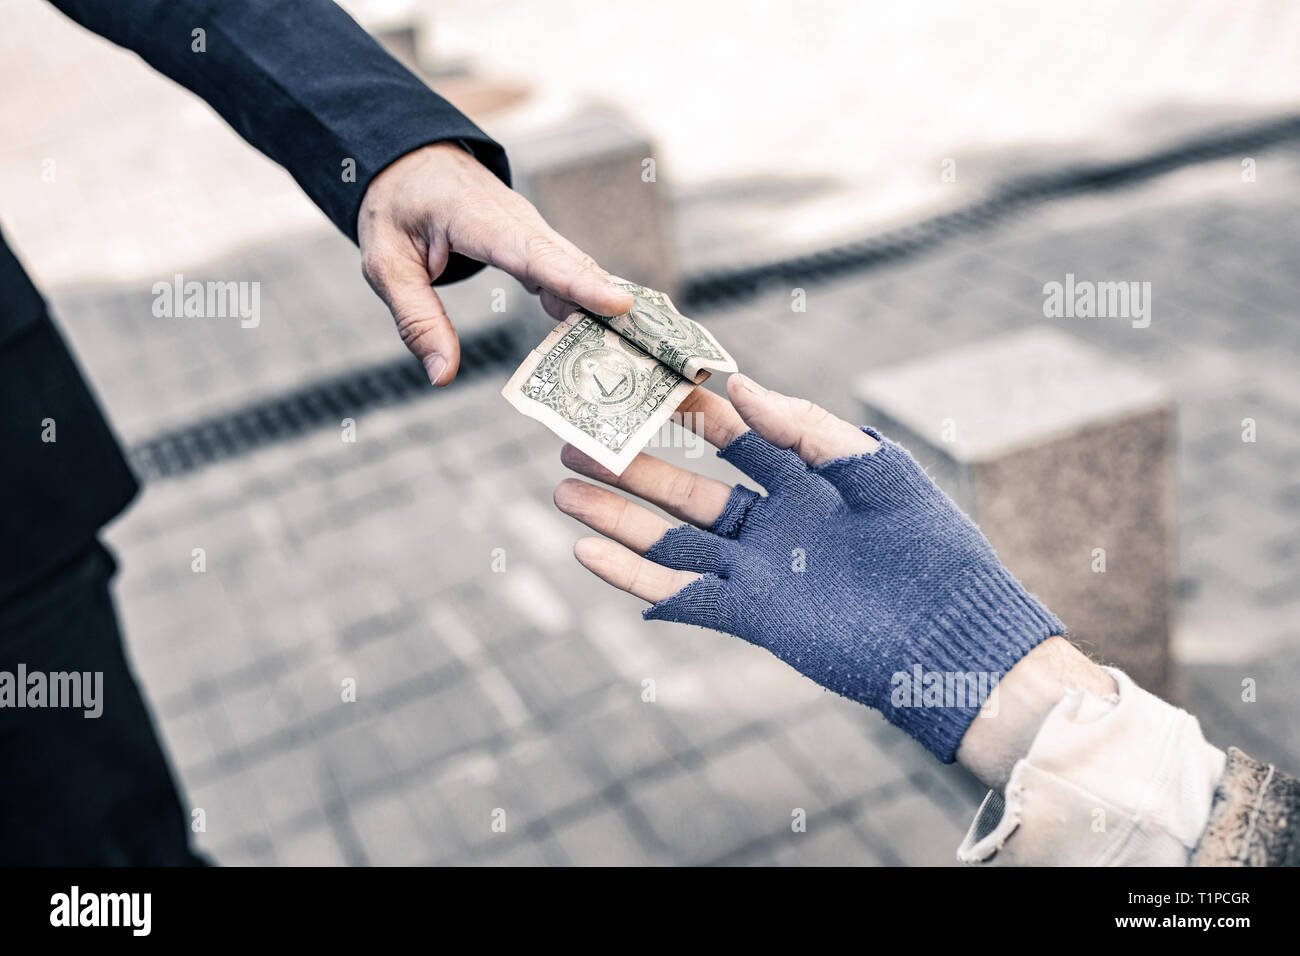 Pedestrian in dark costume carrying money bill and gifting it - Stock Image